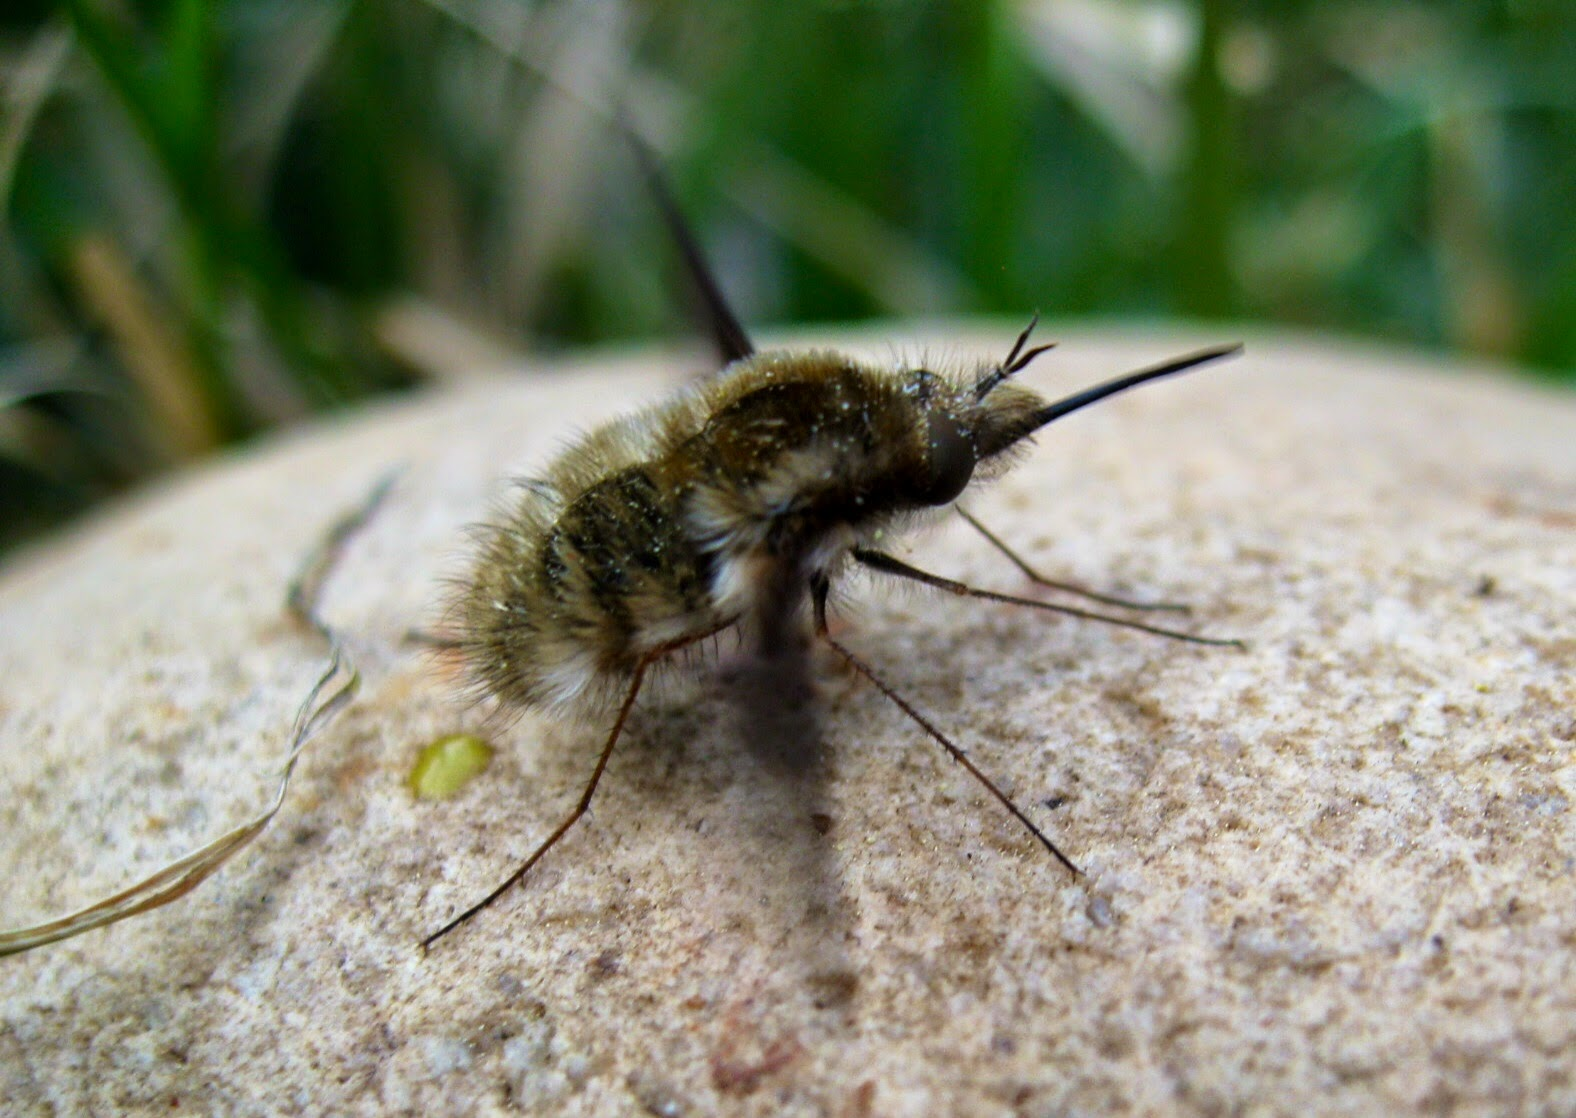 Capital Naturalist by Alonso Abugattas: Bee Flies